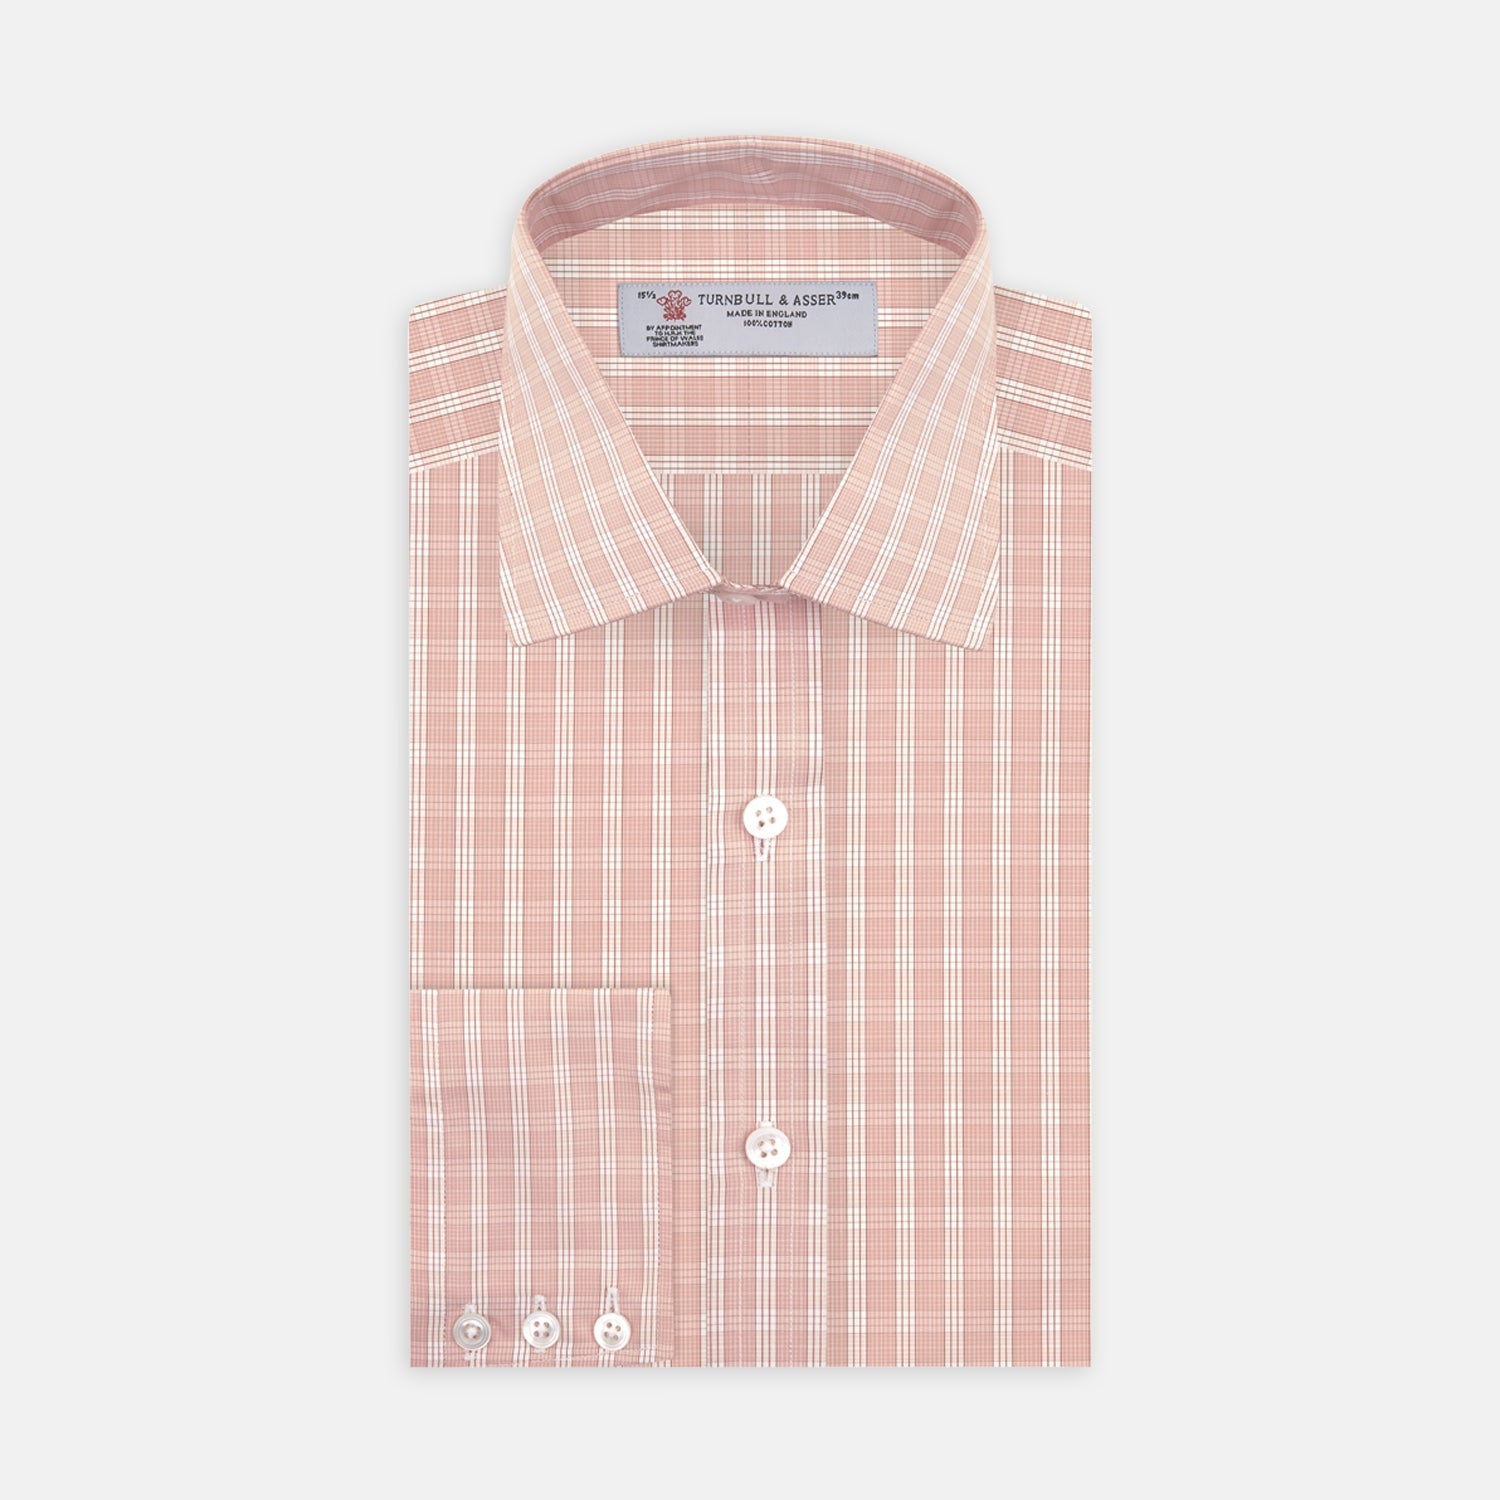 Pink and White Bold Check Shirt with T&A Collar and 3-Button Cuffs